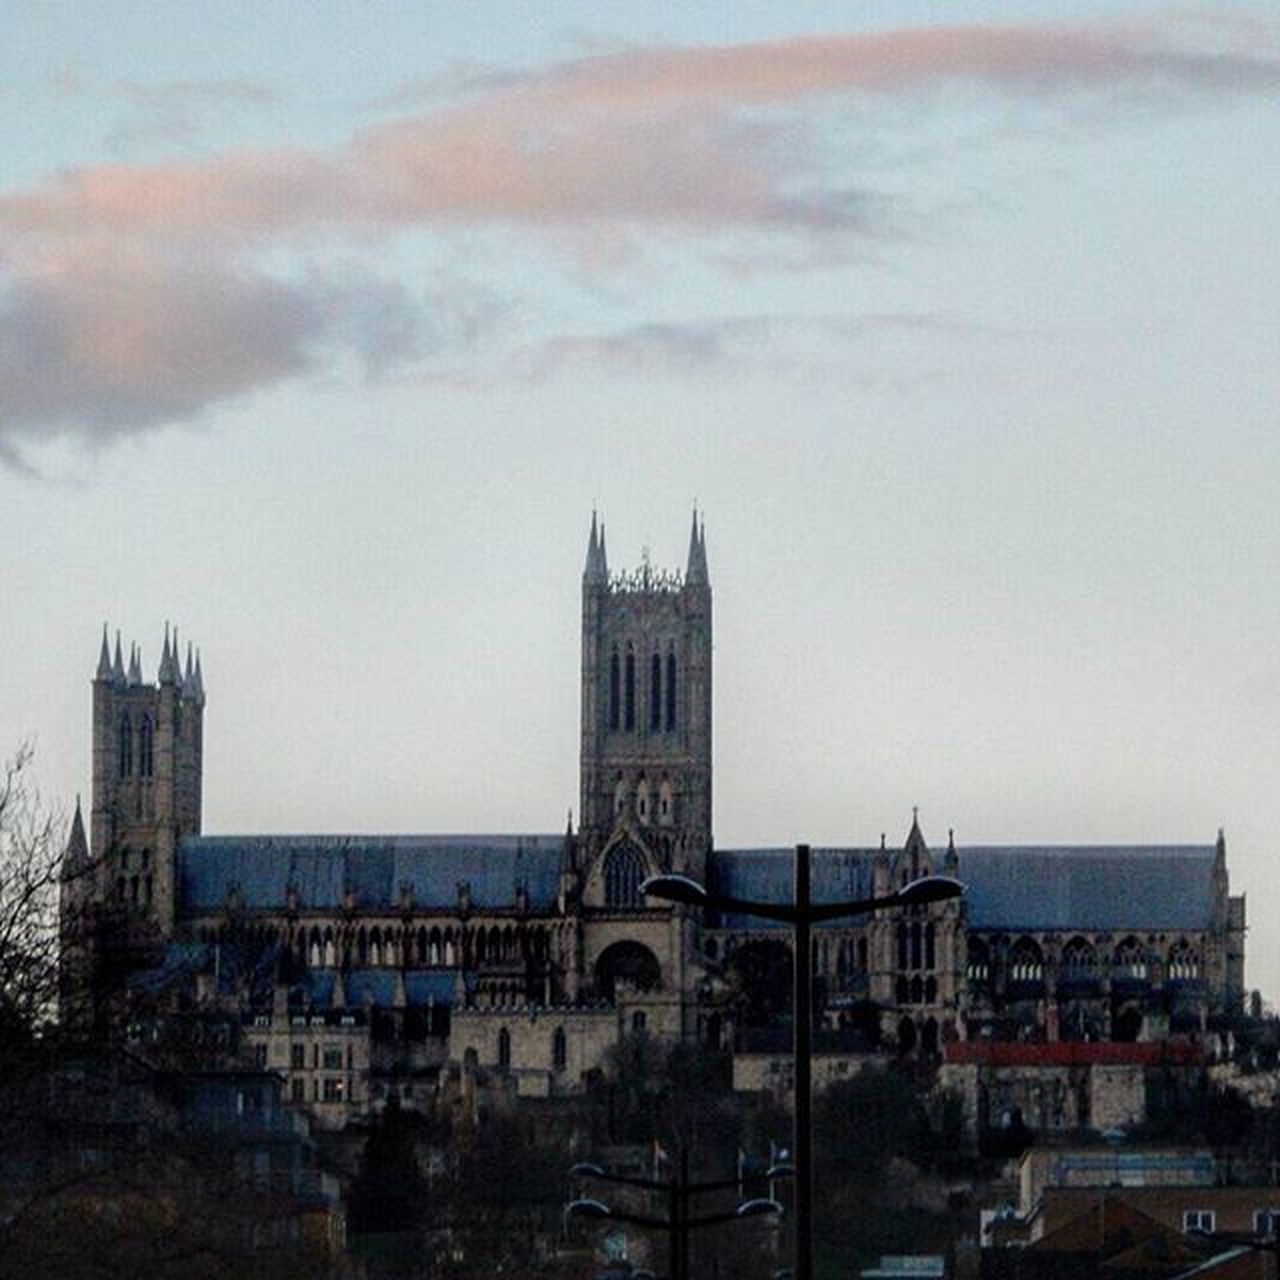 Lincoln Cathedral and the Oldbishopspalace coming over Pelhambridge www.facebook.com/melaniecycles Urbanphotography Photography Photos Lifethroughalens Nikon Cityscape Nikon_photography Nikons9900 Heritage Lincolnshire Architecture Evening Eveninglight Clouds Appreciatebeauty Urbanbuilding History